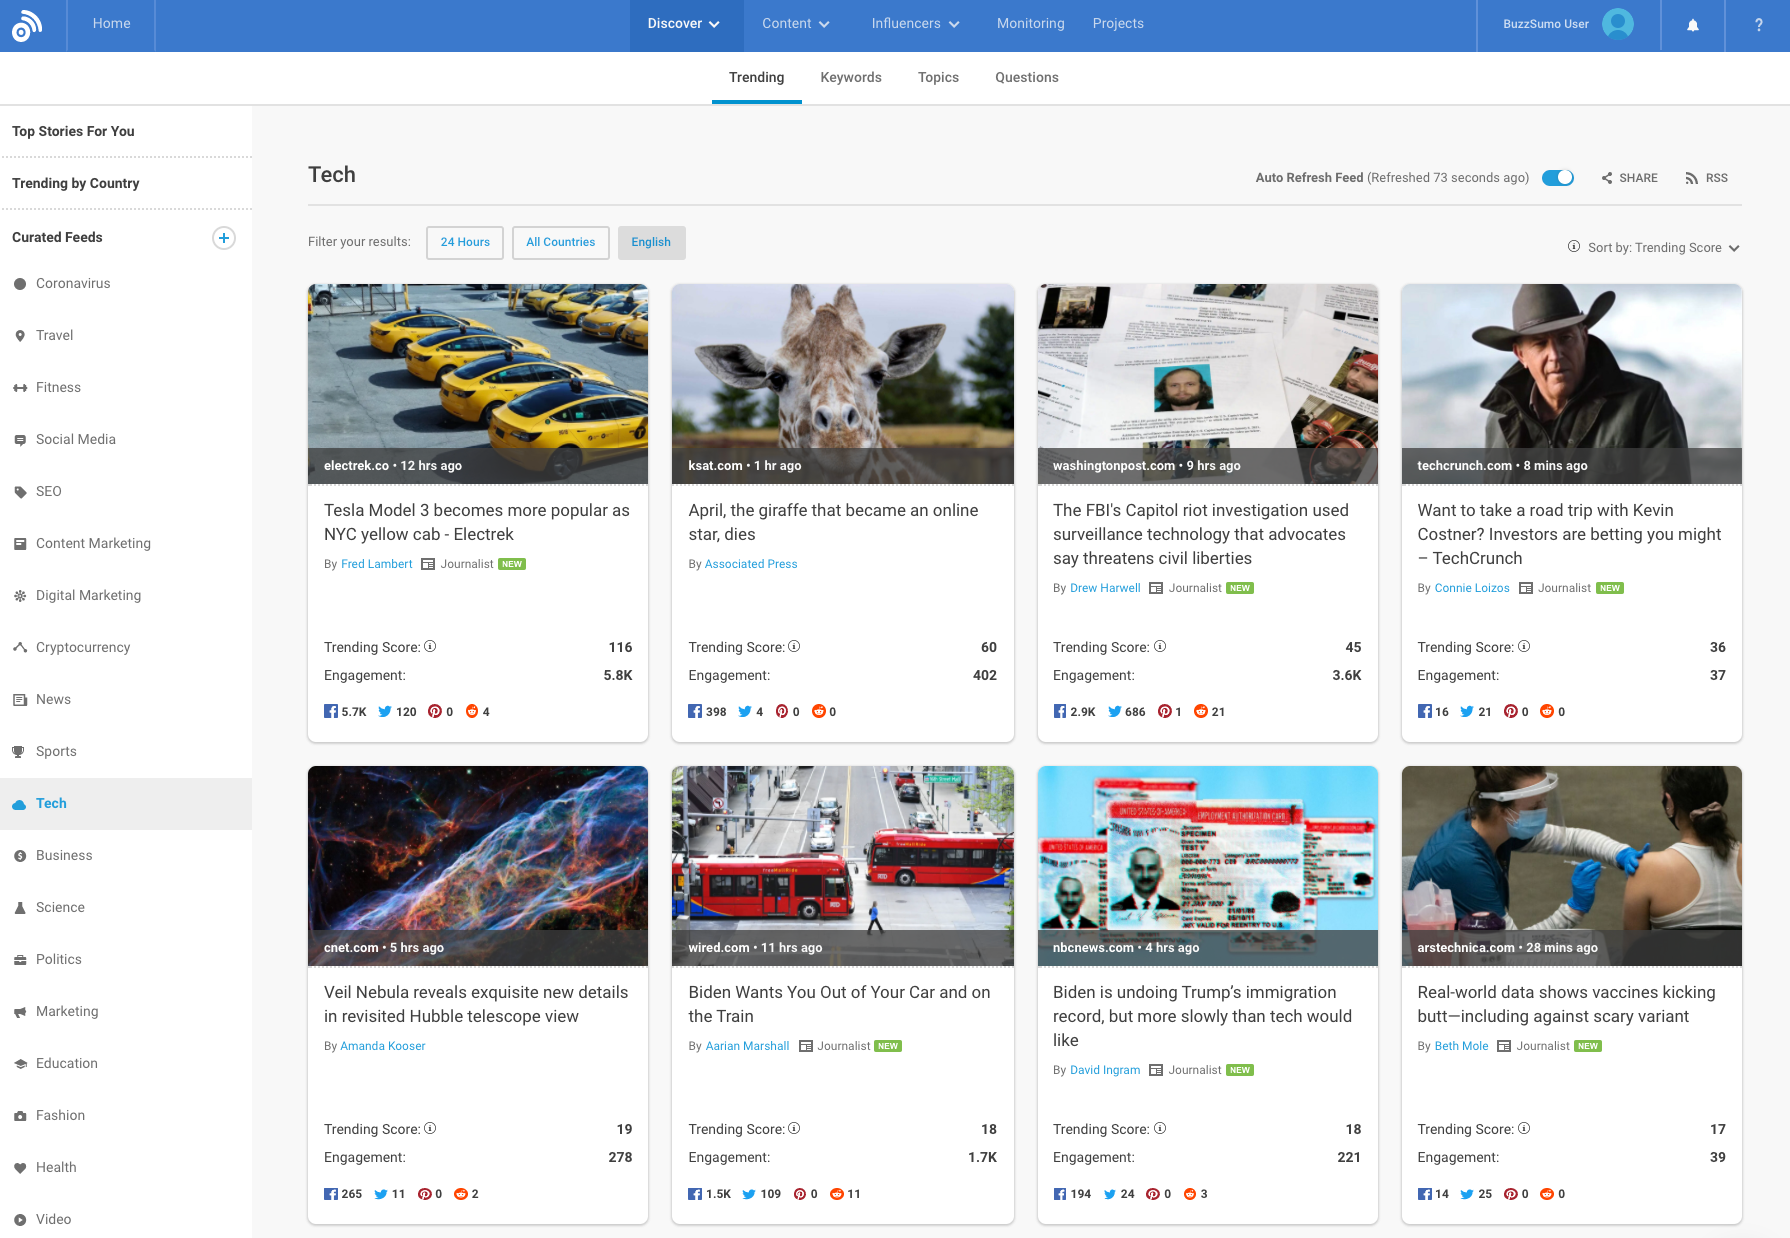 Trending Feeds - See all of the trending stories within the past 24 hours. Choose from our pre-curated feeds, or set up your own custom feed to monitor stories most relevant to you. Understand how quickly a story is going viral with our Trending Score.